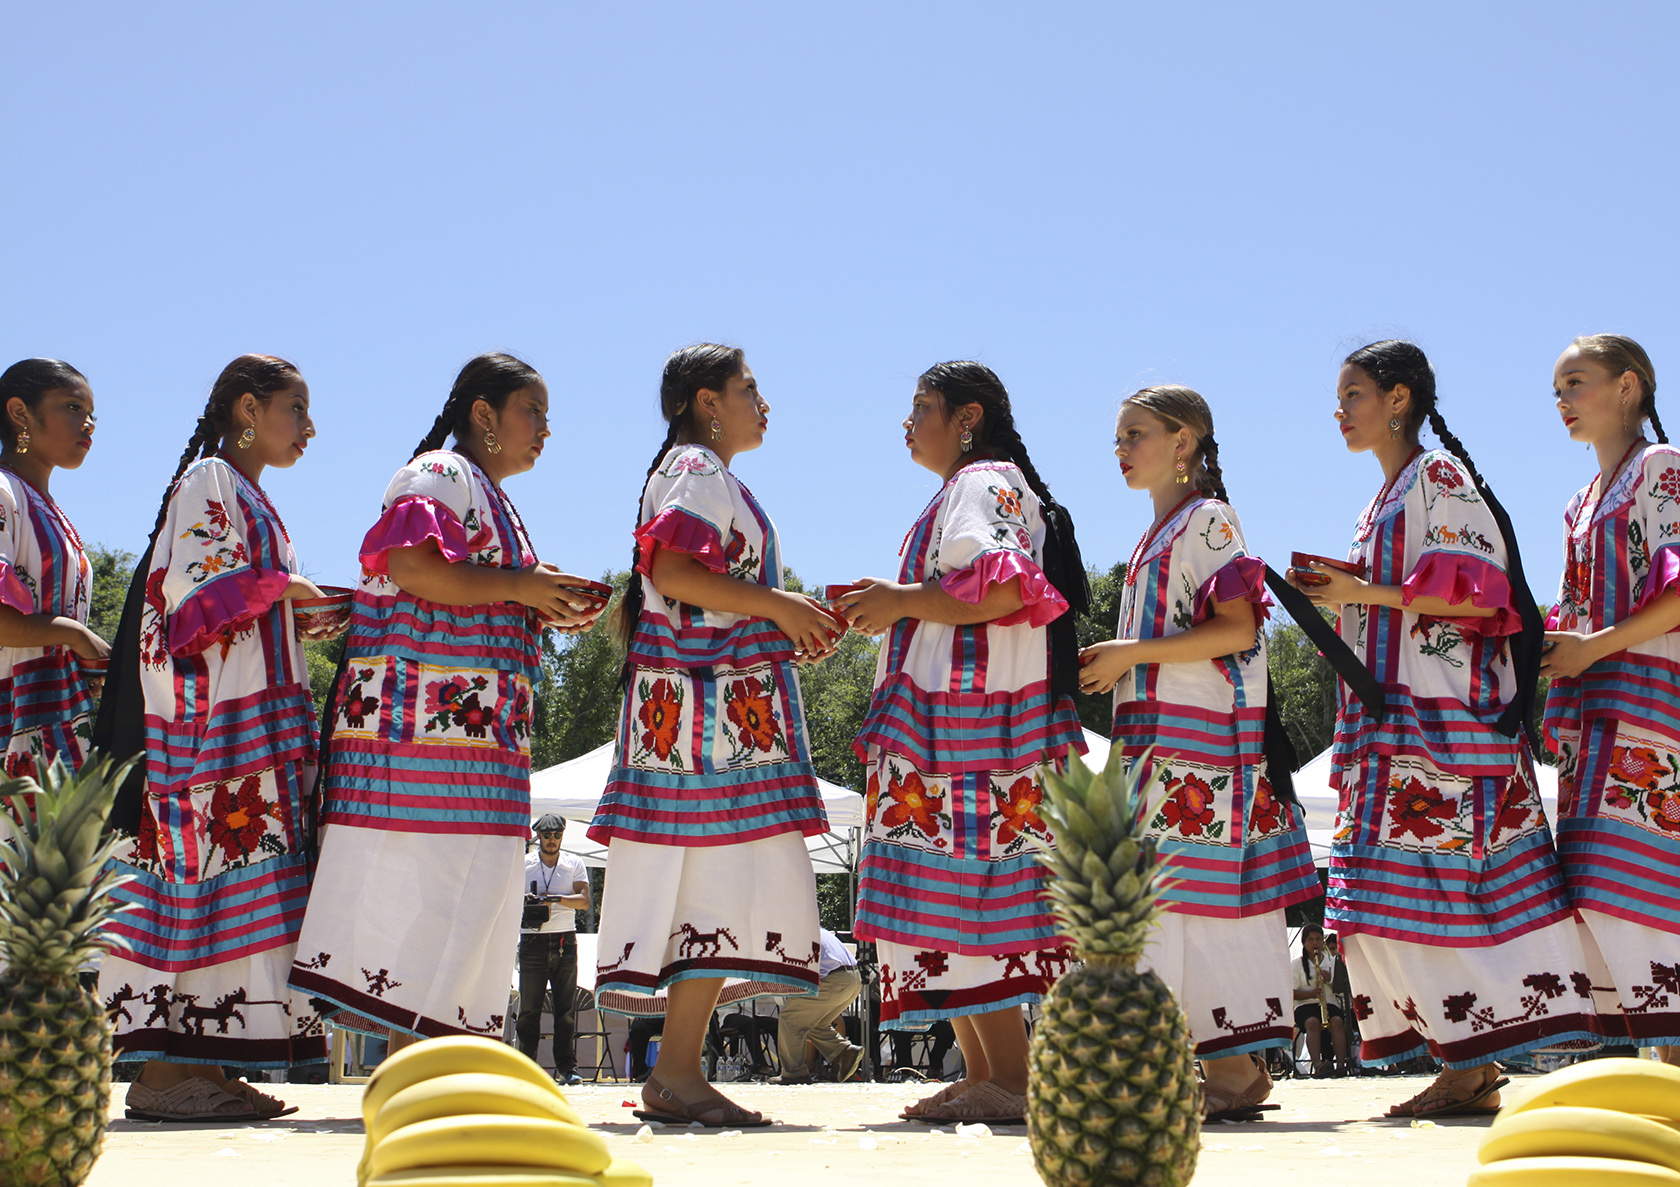 The student dancers, who range from ages 6 and up, practice throughout the school year for various community events such as Guelaguetza and Día de los Muertos. Photo by Ali Enright.